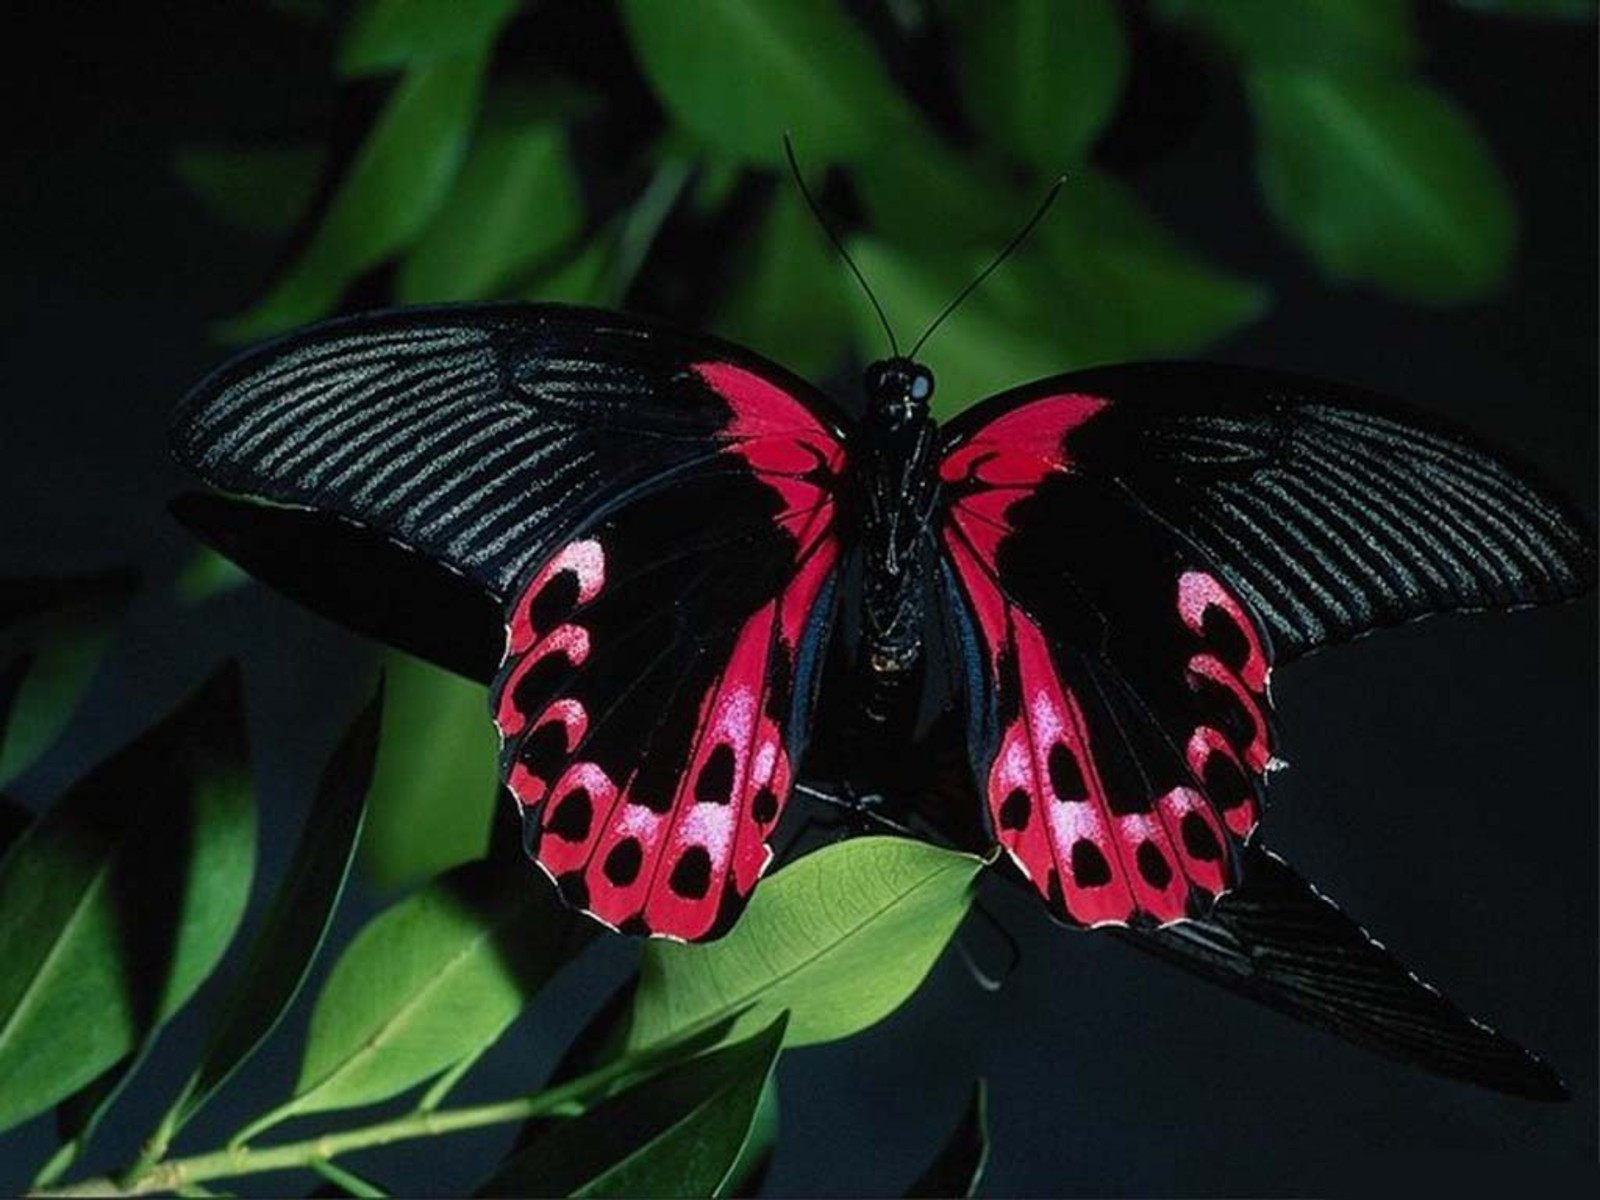 1600x1200 - Pretty Butterfly Backgrounds 30